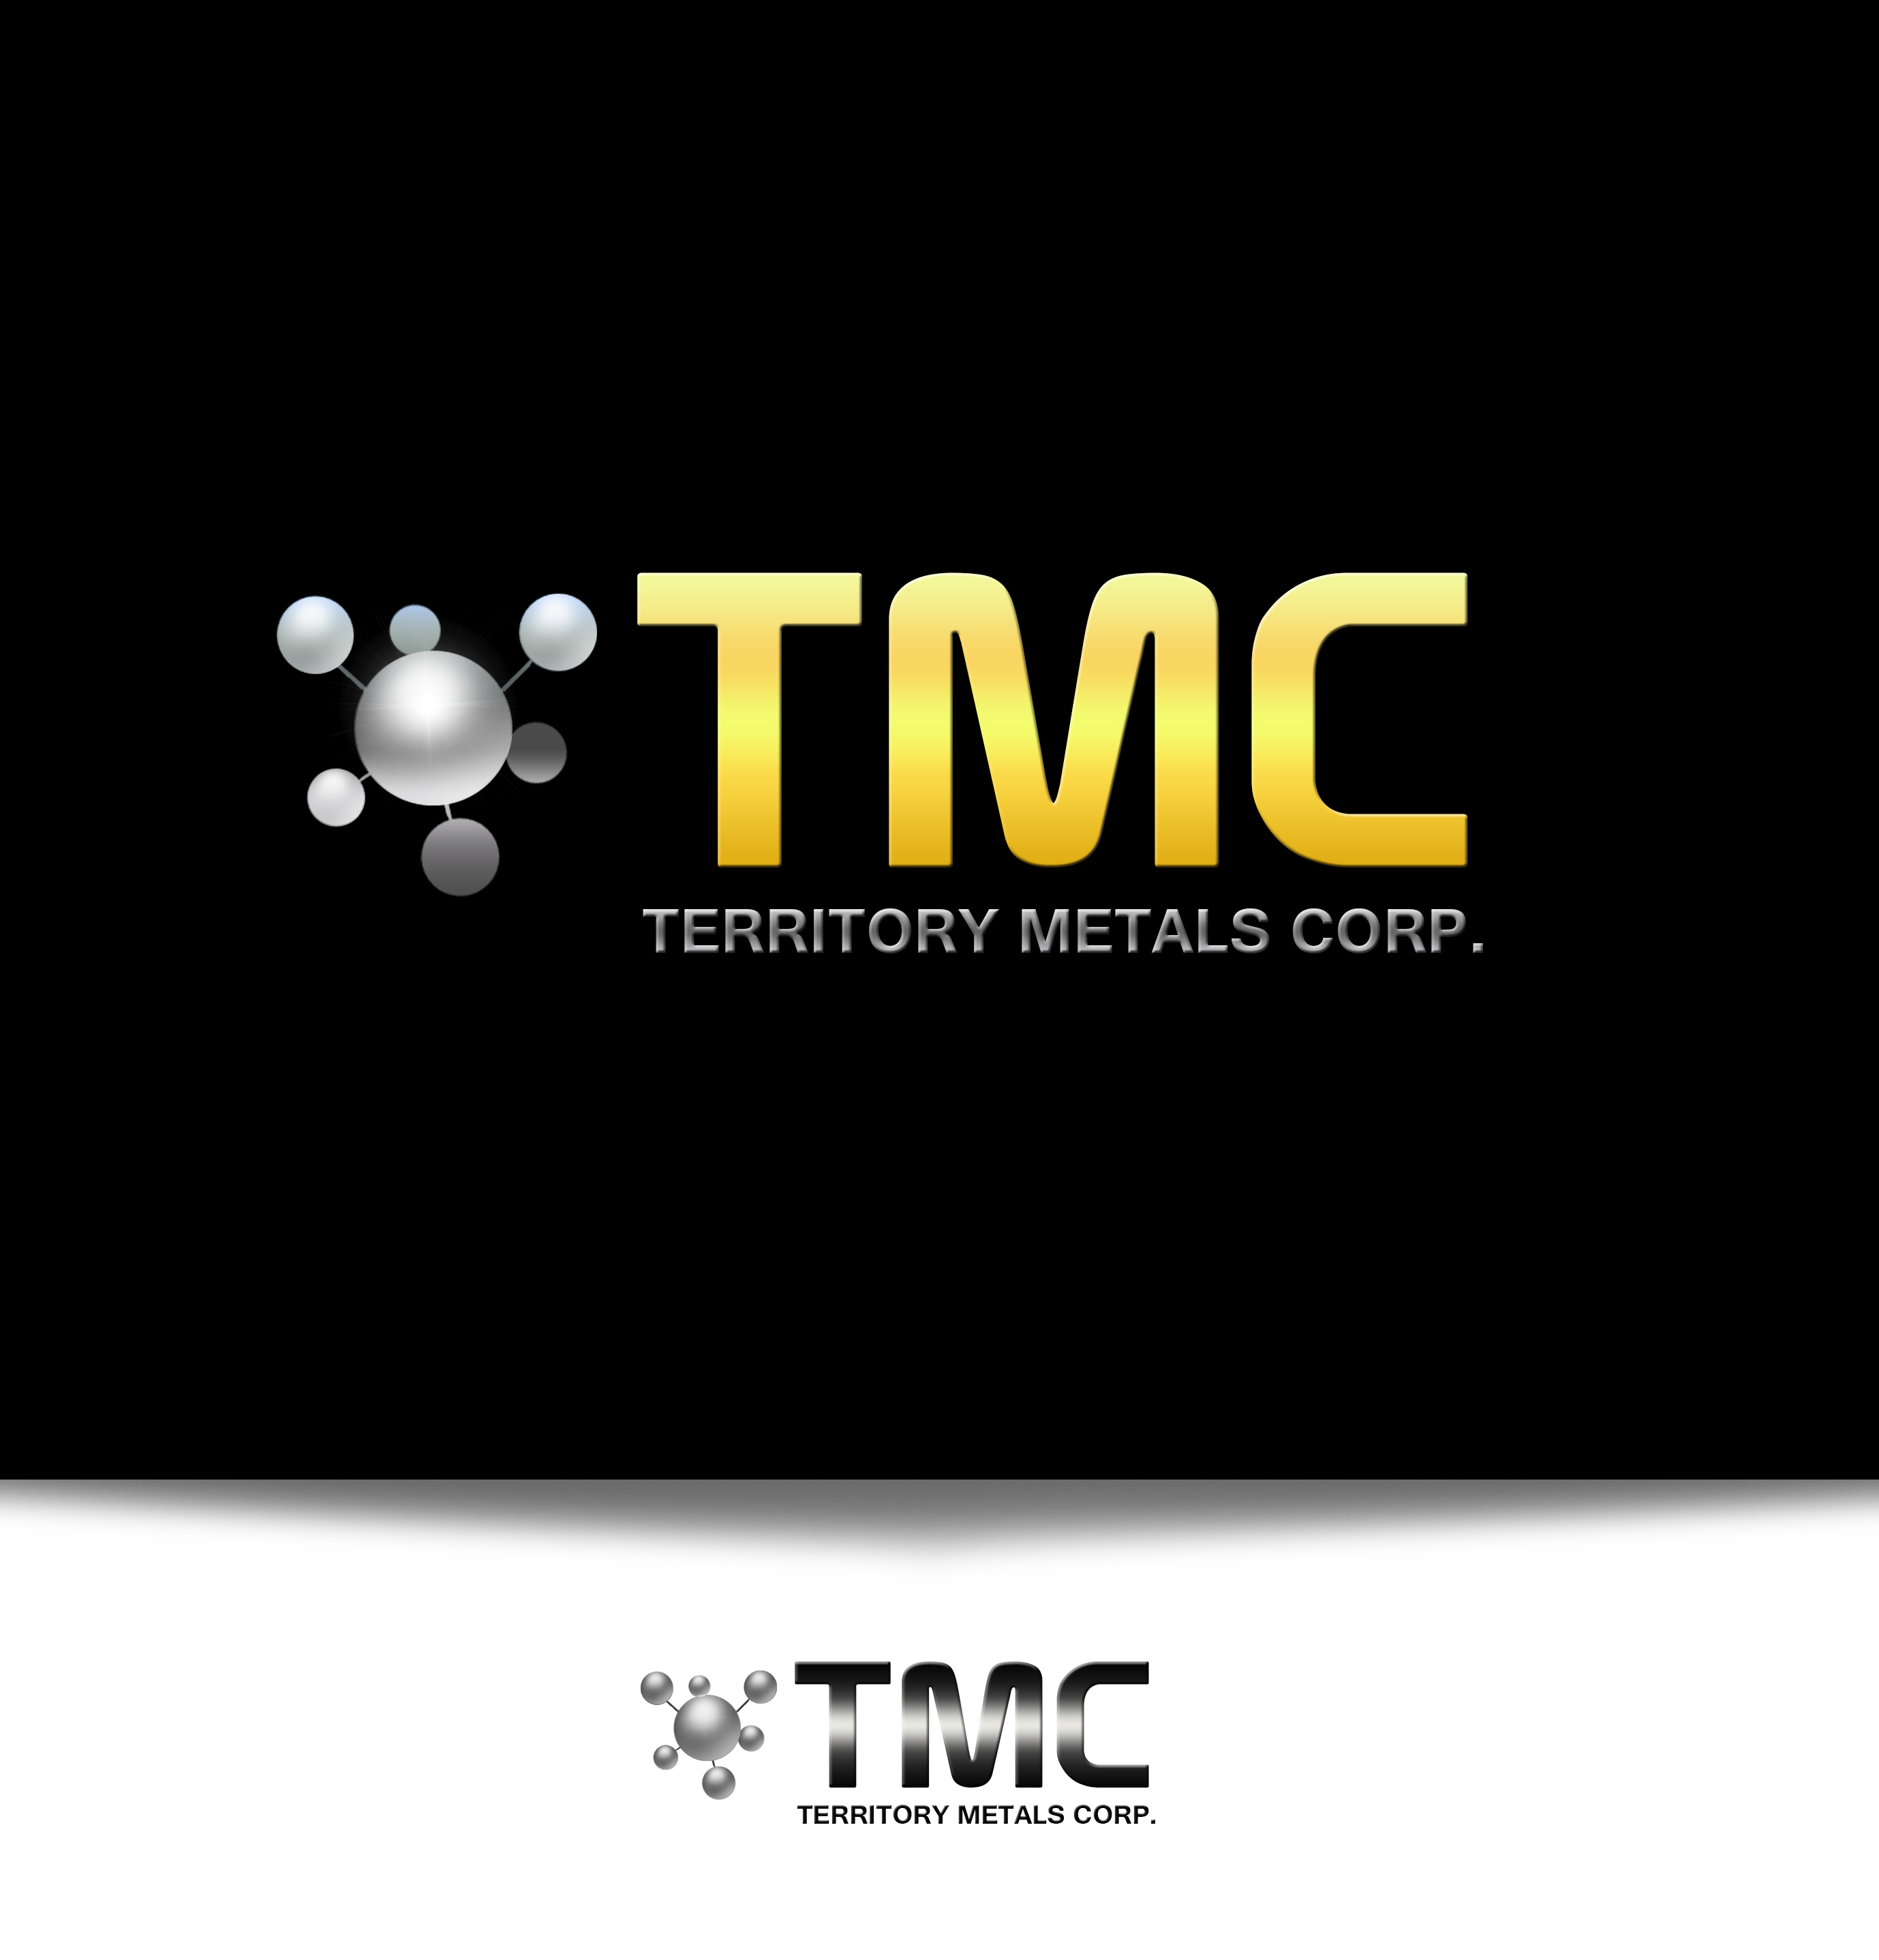 Logo Design by JSDESIGNGROUP - Entry No. 47 in the Logo Design Contest Unique Logo Design Wanted for Territory Metals Corp..